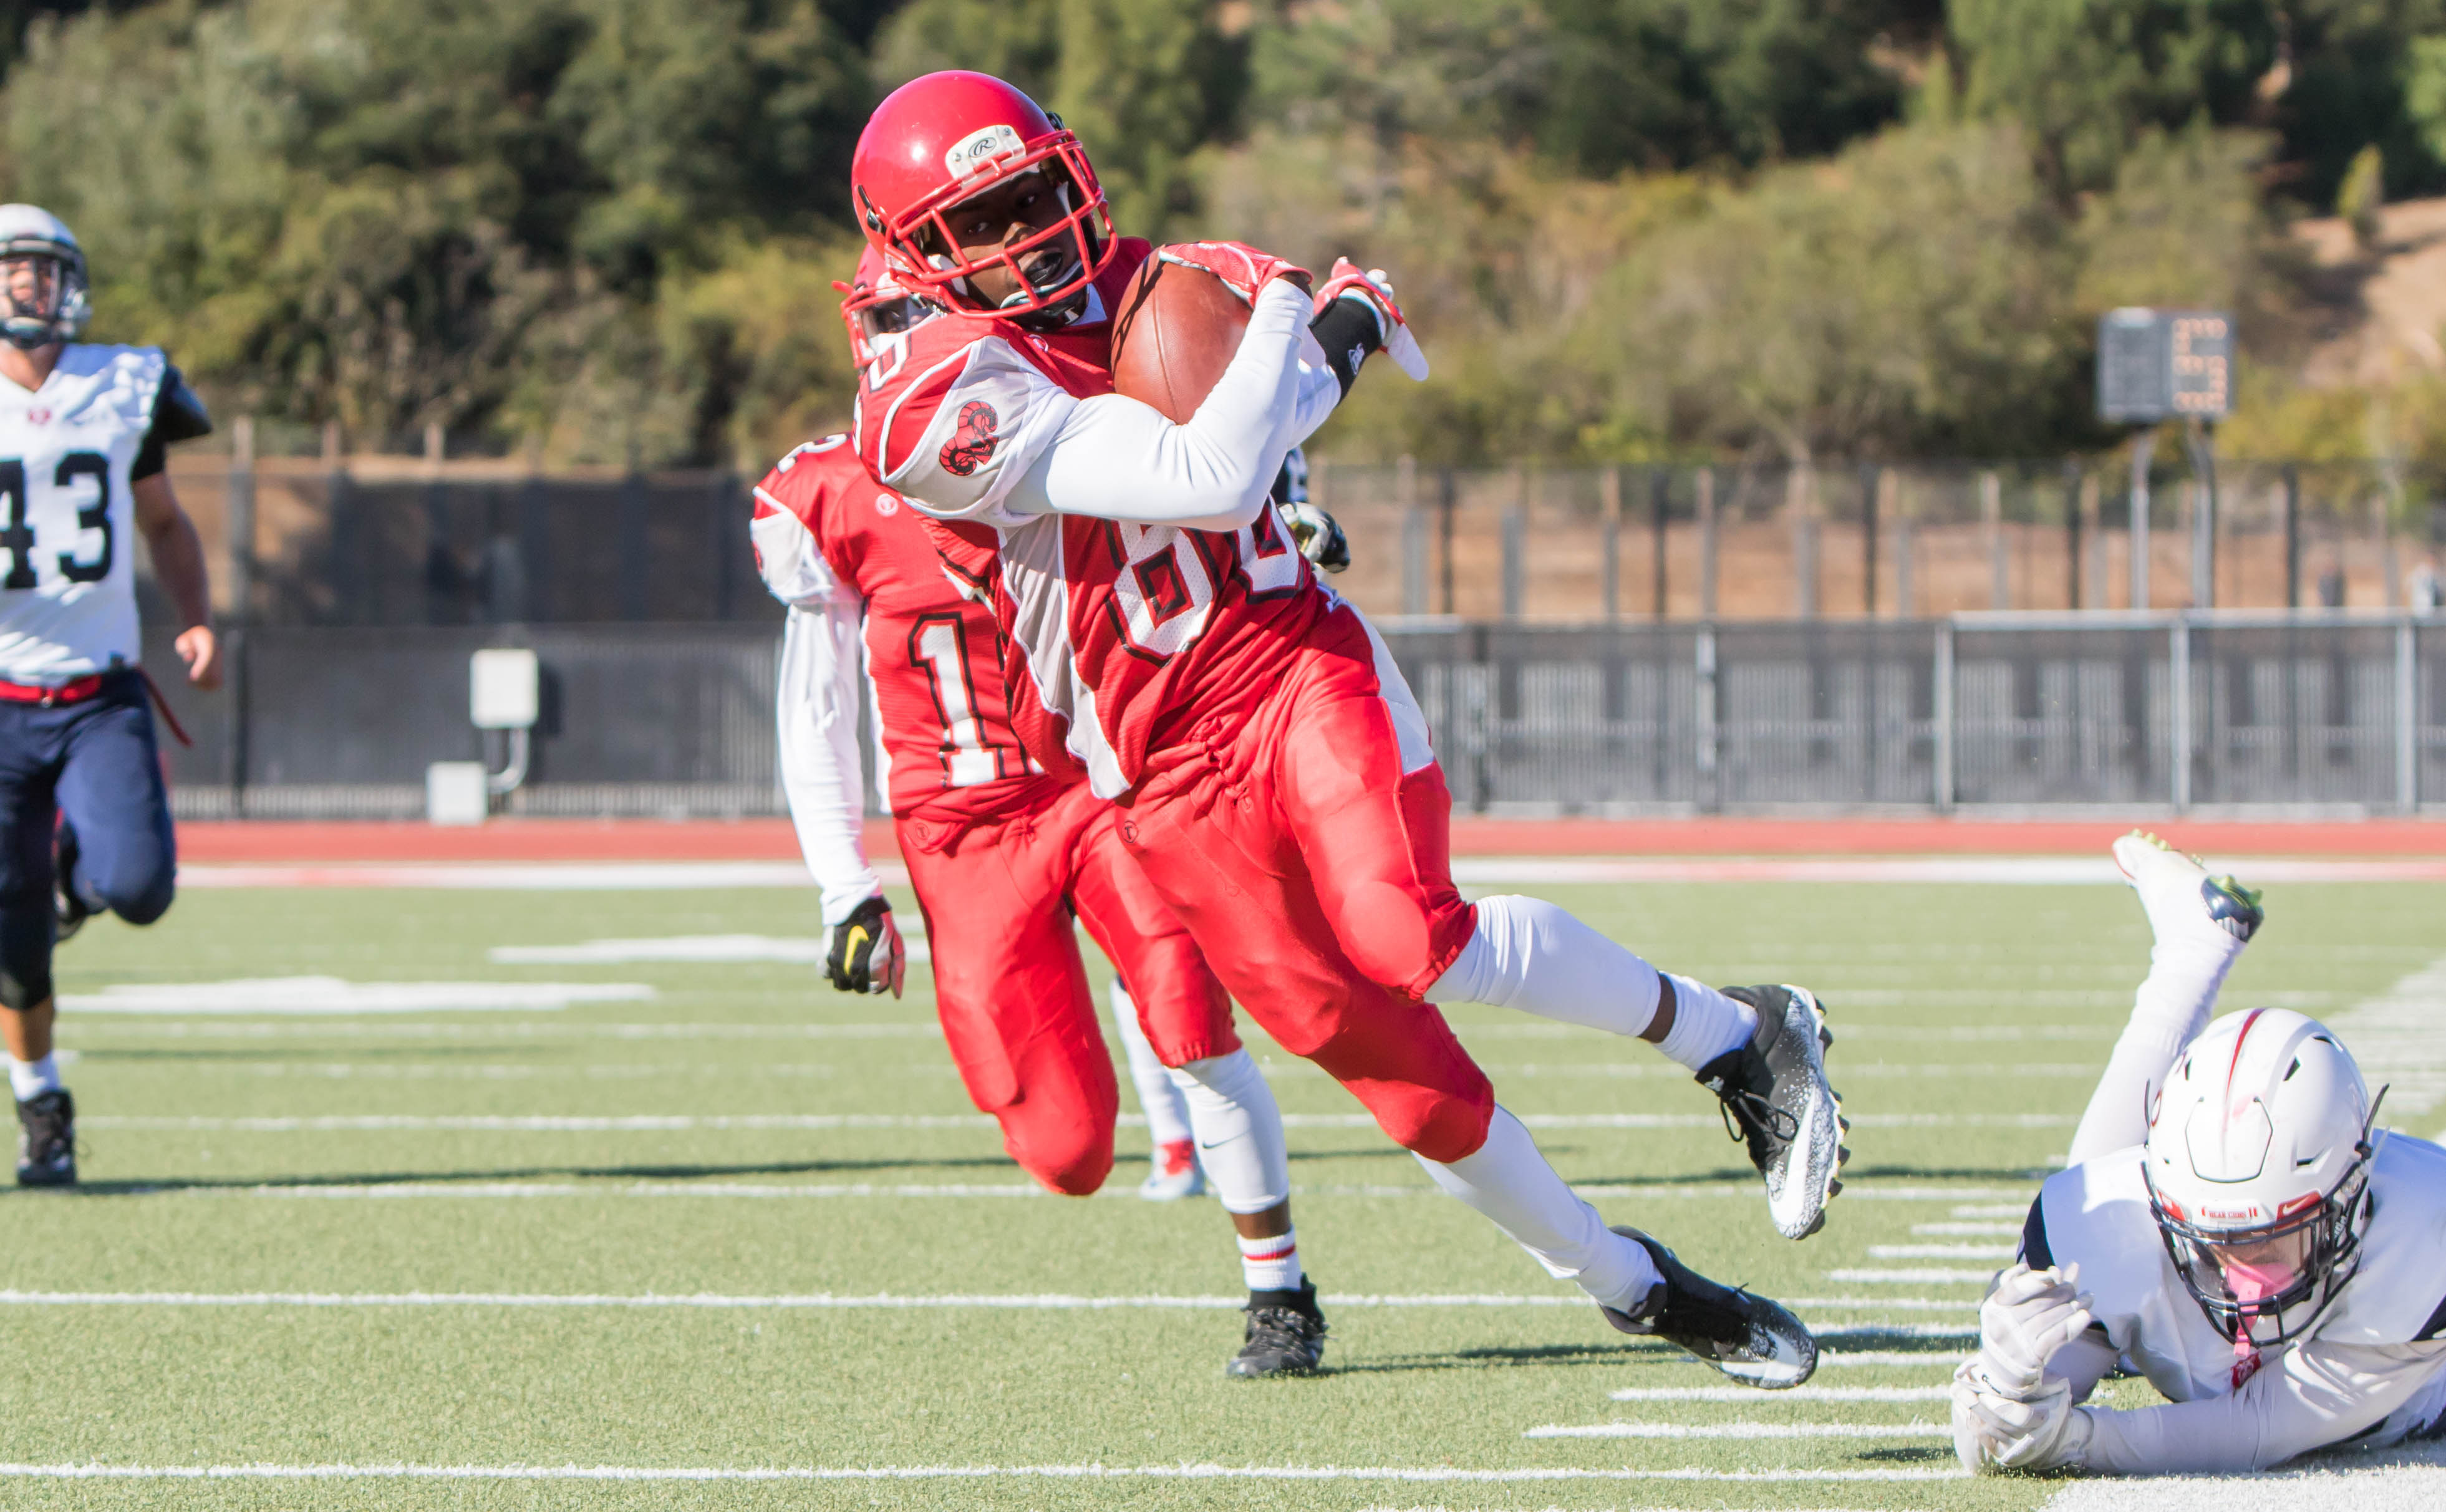 Wide Receiver Tyrek Allen (#88) gallops down the field with the ball after catching a pass on Saturday, Oct. 21, 2017. San Francisco. Photo by Peter Wong.